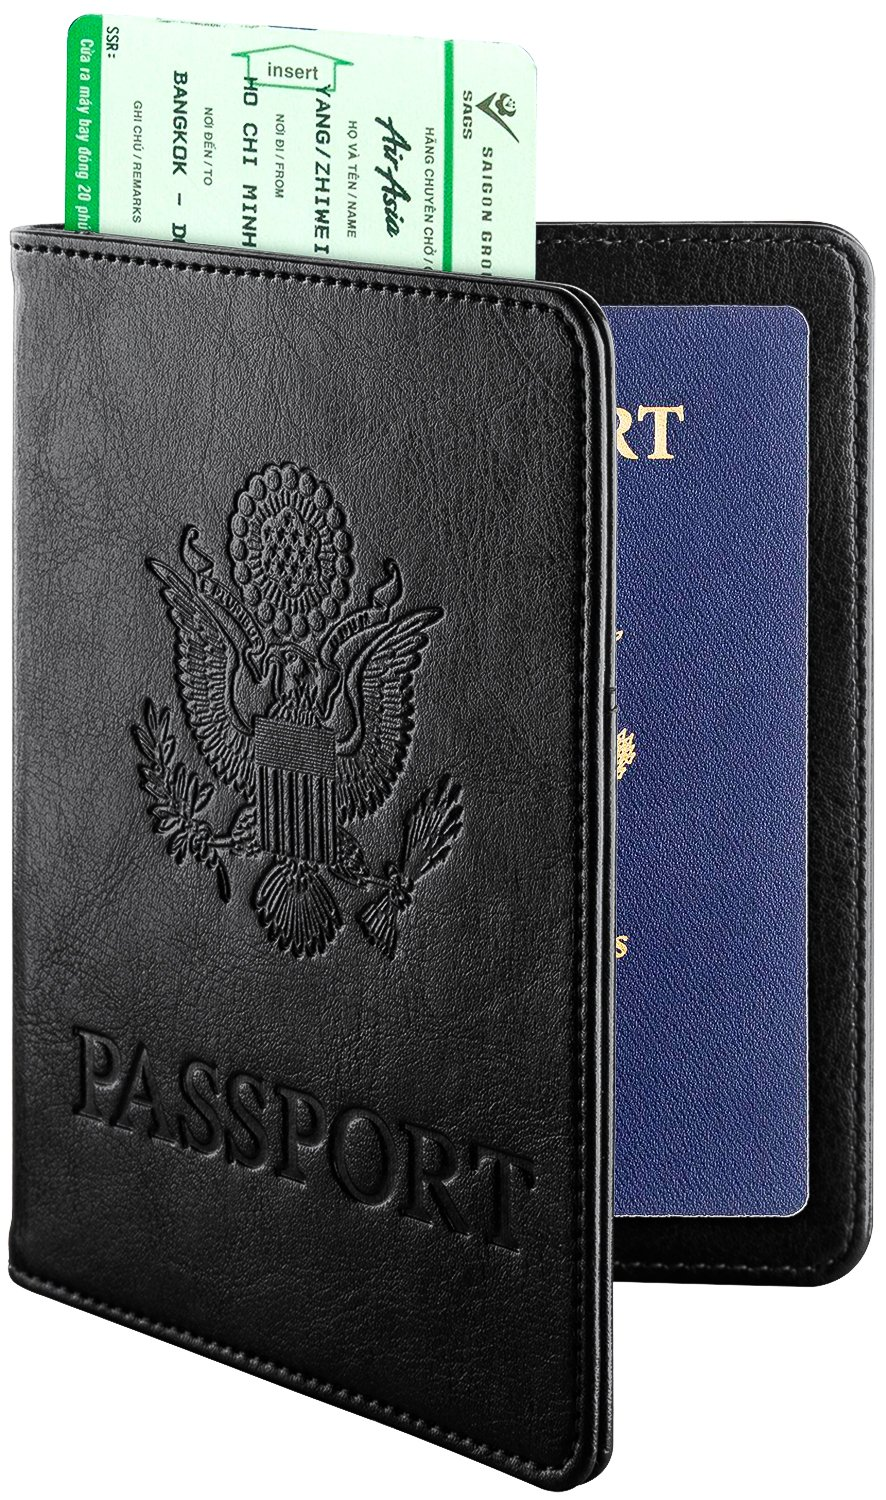 DTTO RFID Blocking Passport Cover, Multi-functional Premium Leather Passport Holder Travel Wallet Cover Case - Black